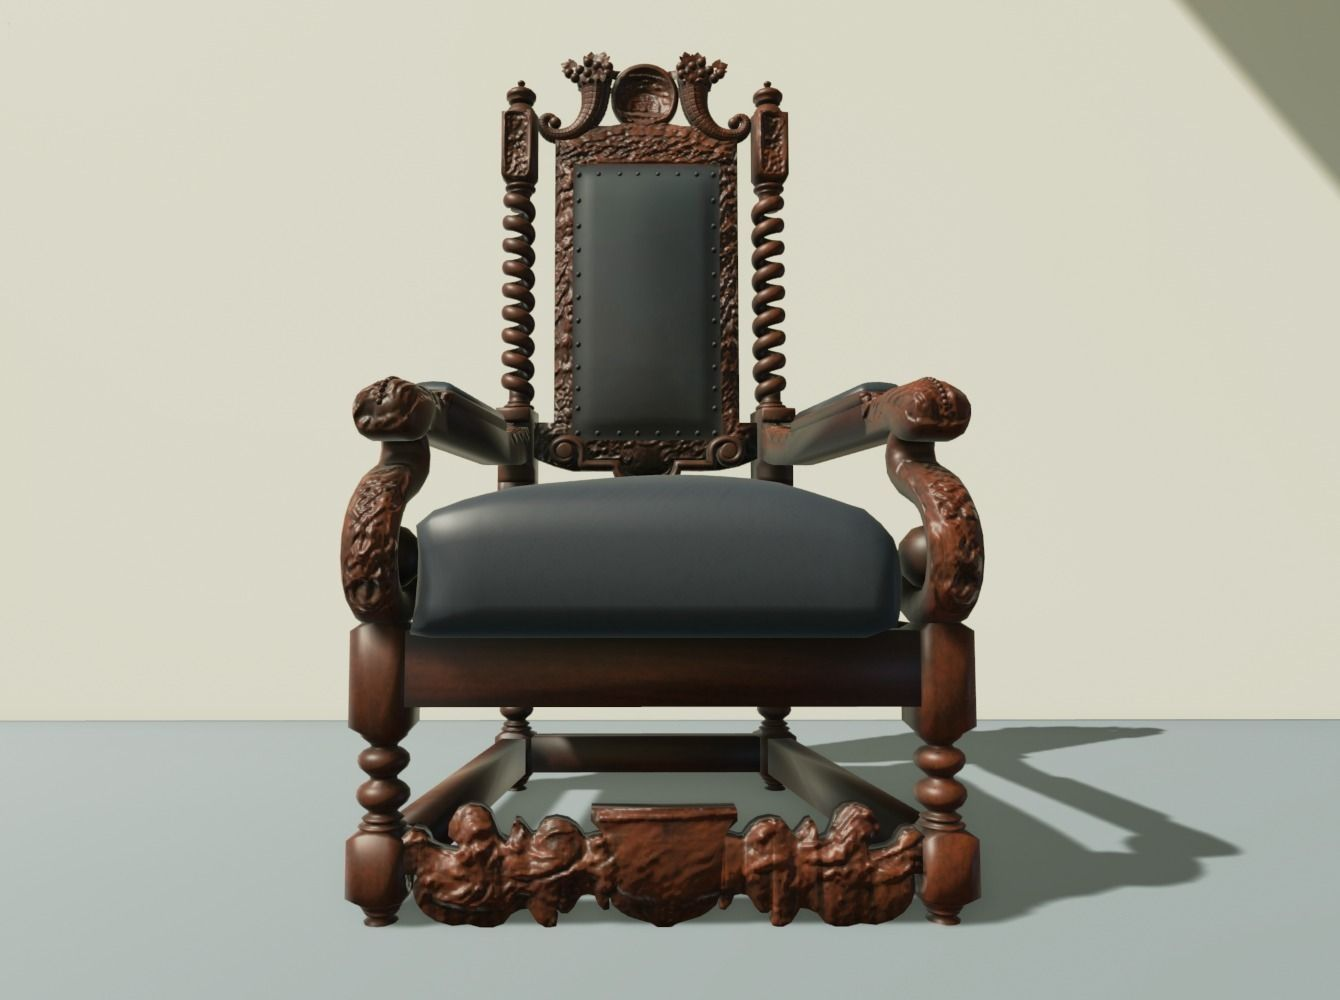 Antique Throne Chair 3d Model Rigged Obj Cgtrader Com